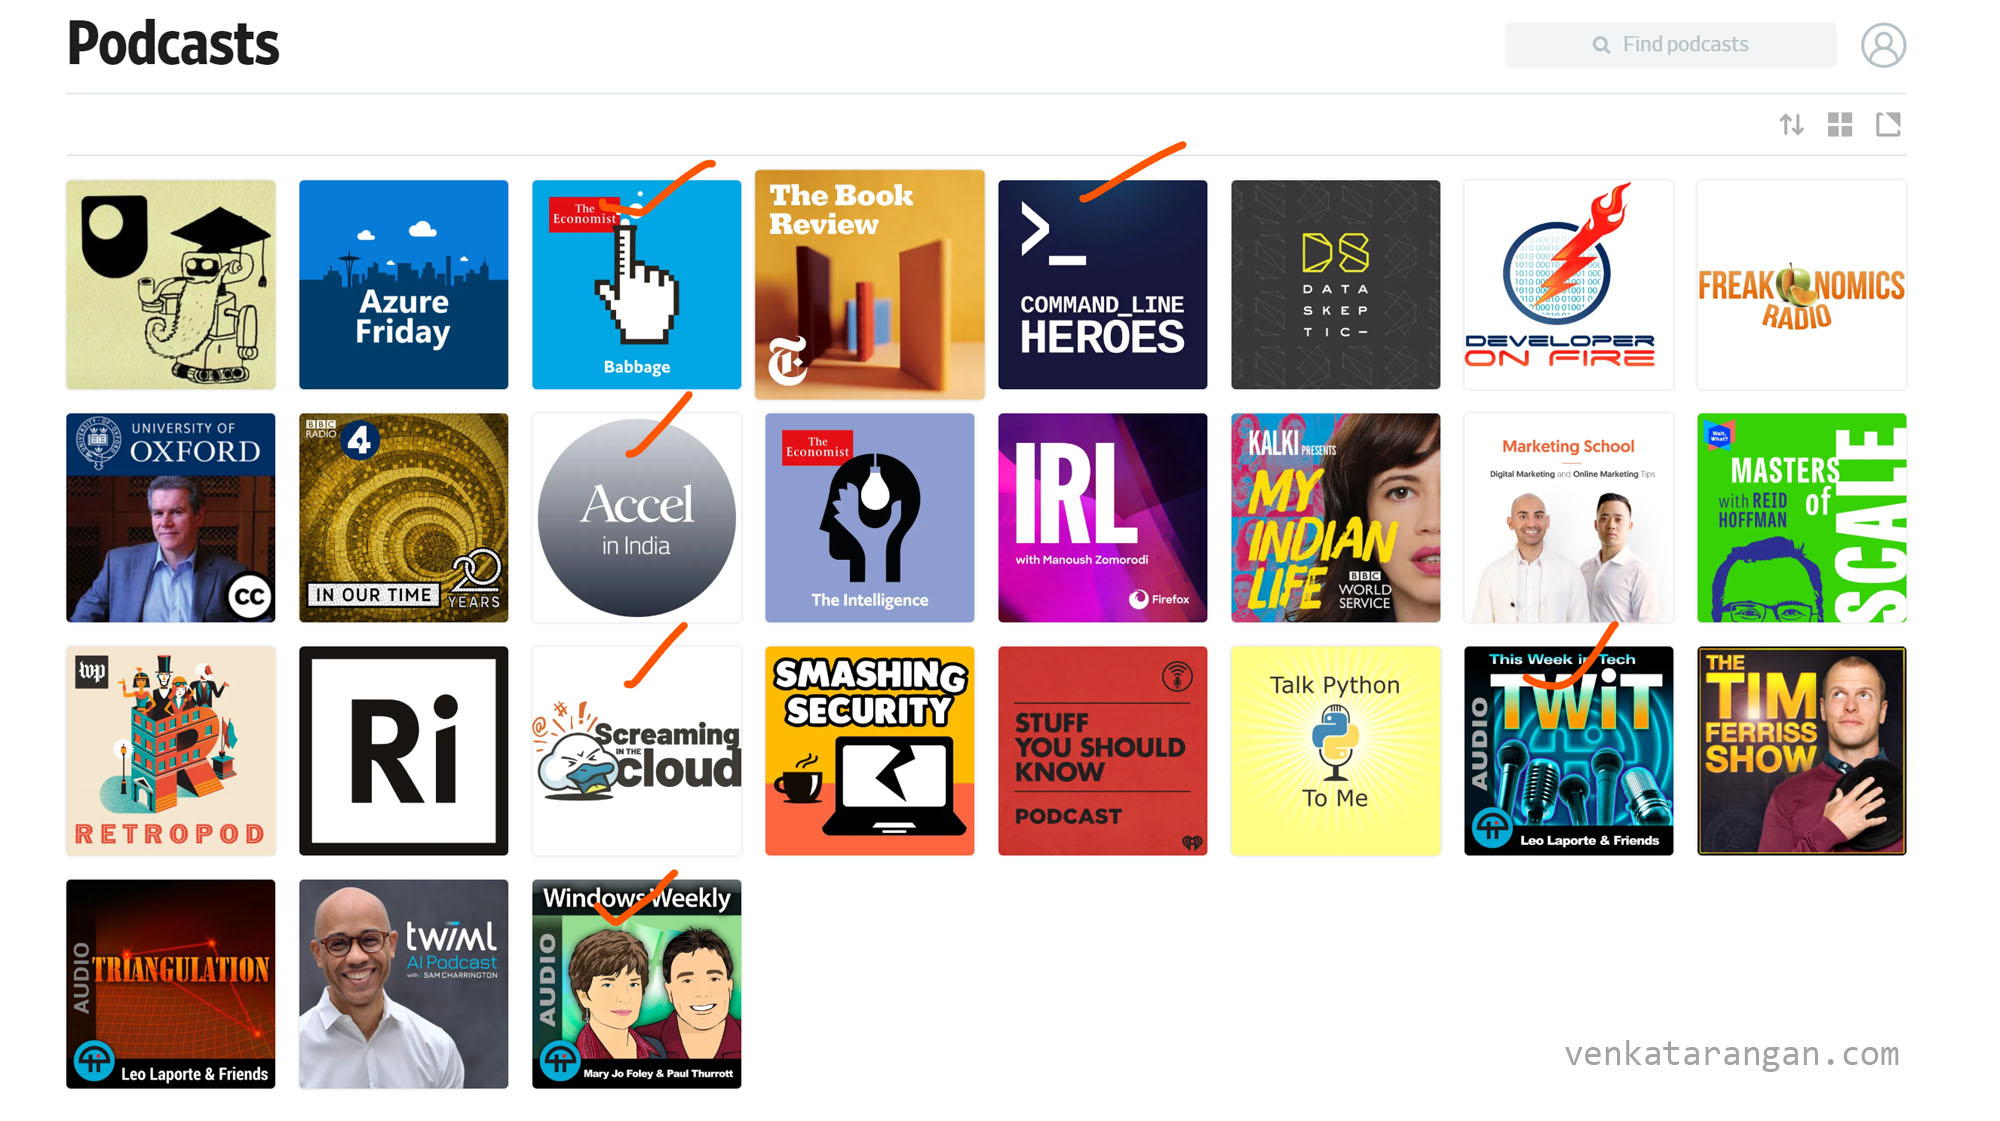 Podcast subscriptions that I currently have